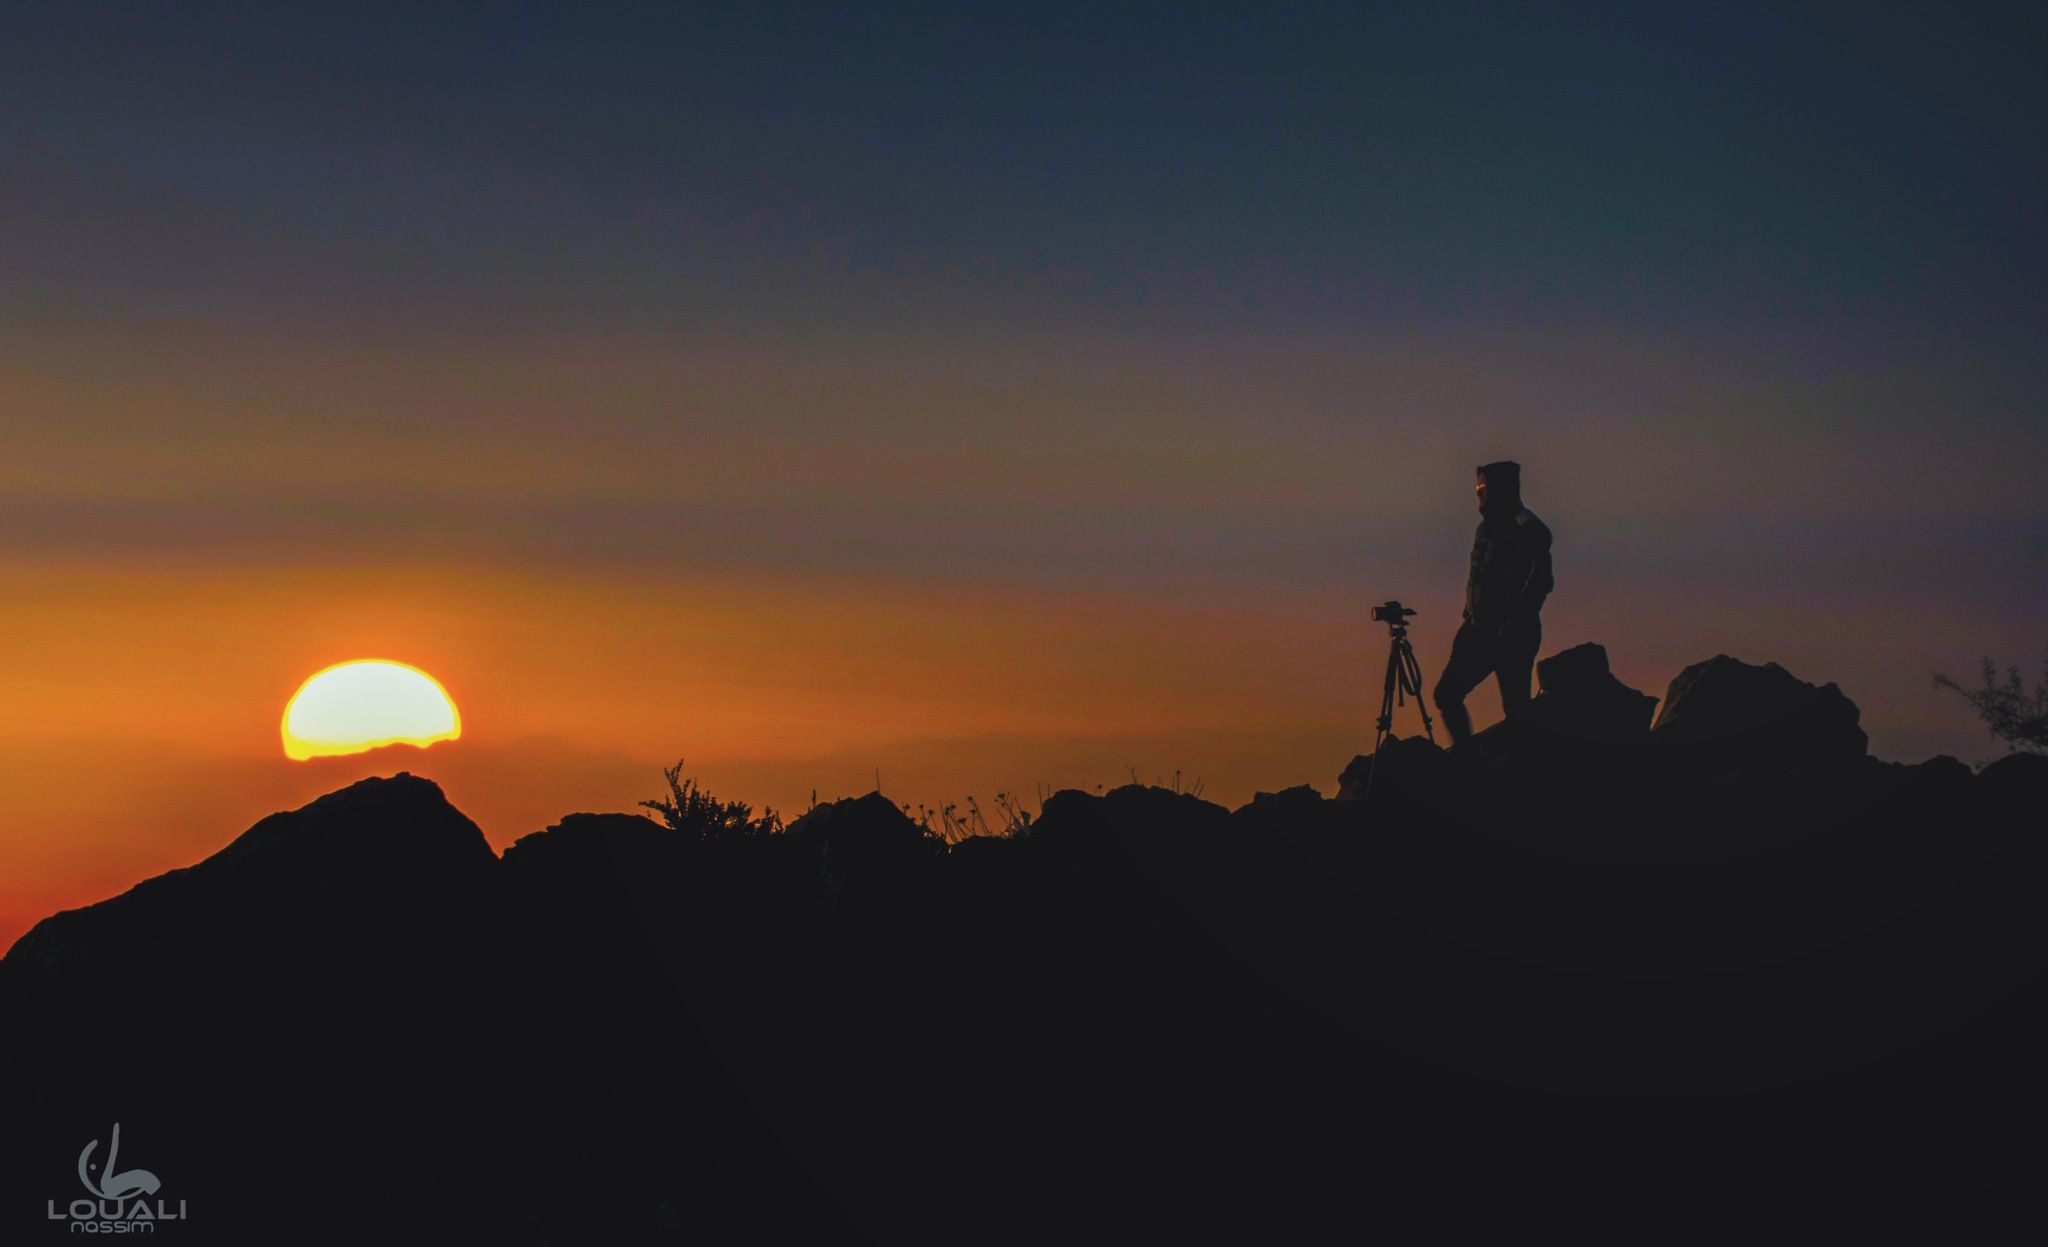 Sunset silhouette  by Nassim louali